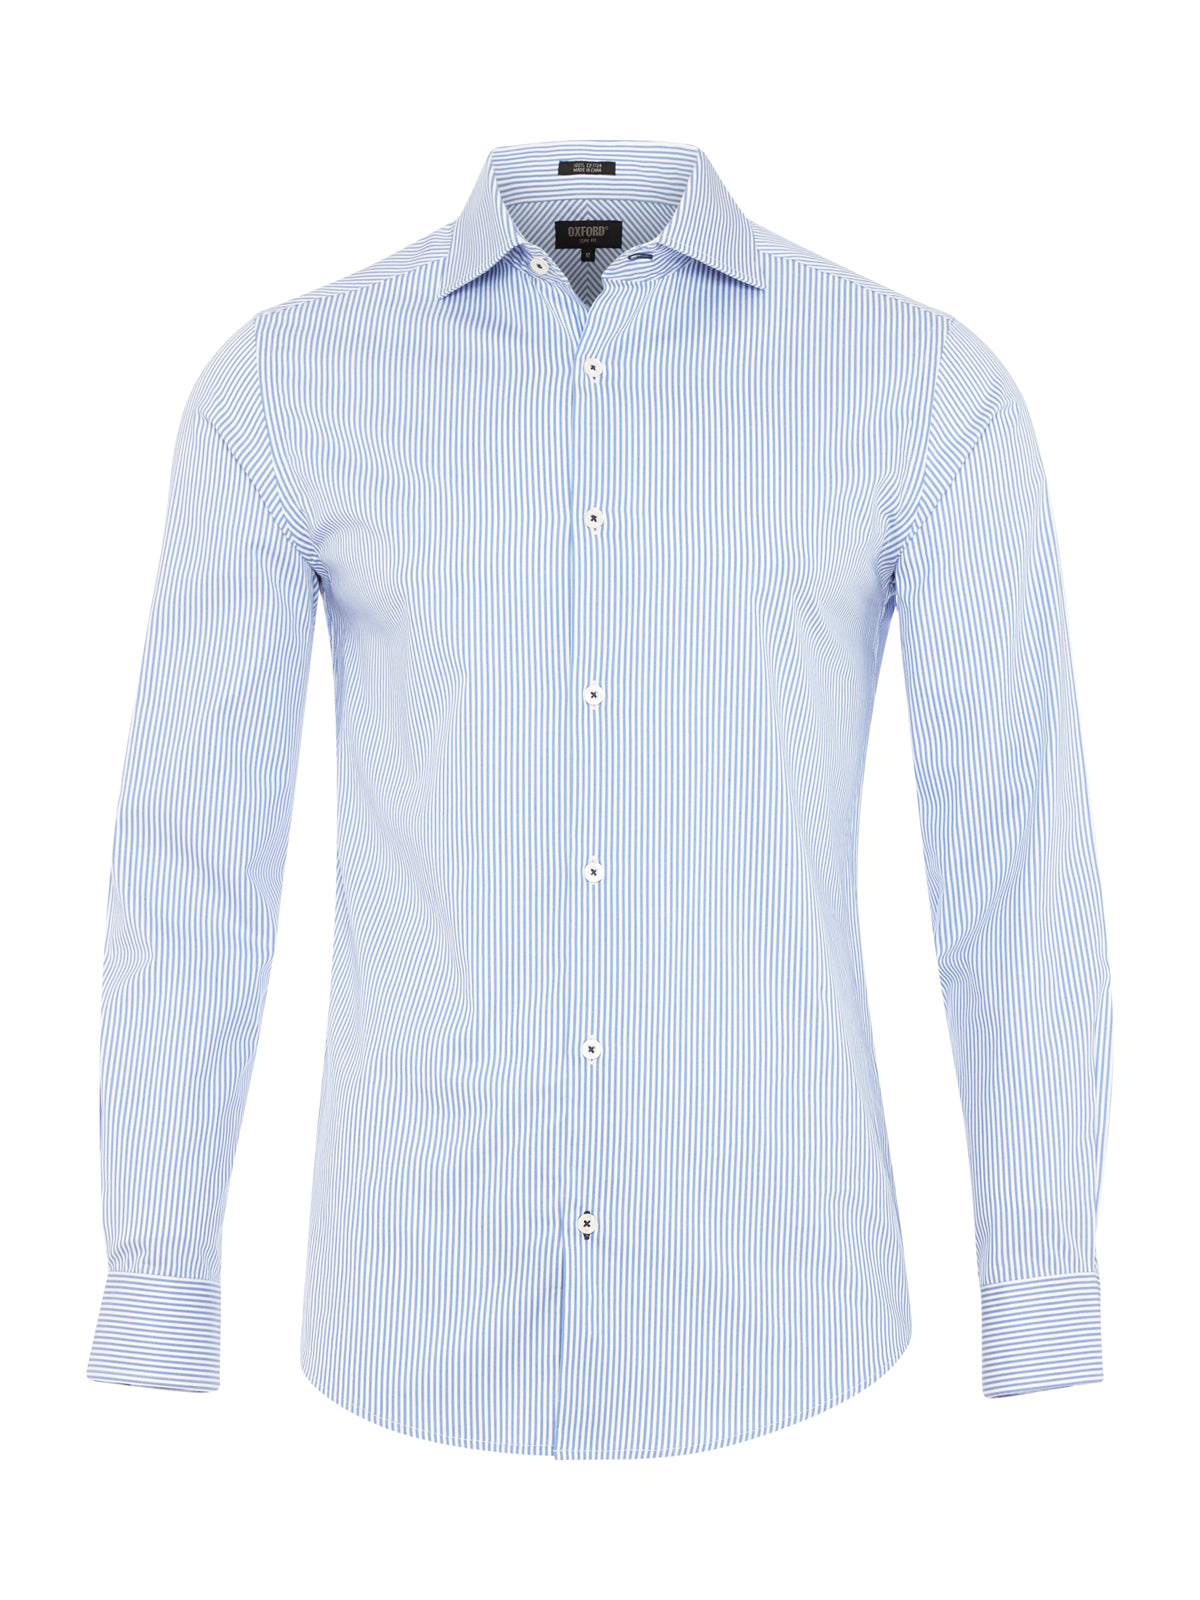 TRAFALGAR STRIPE SHIRT BLUE